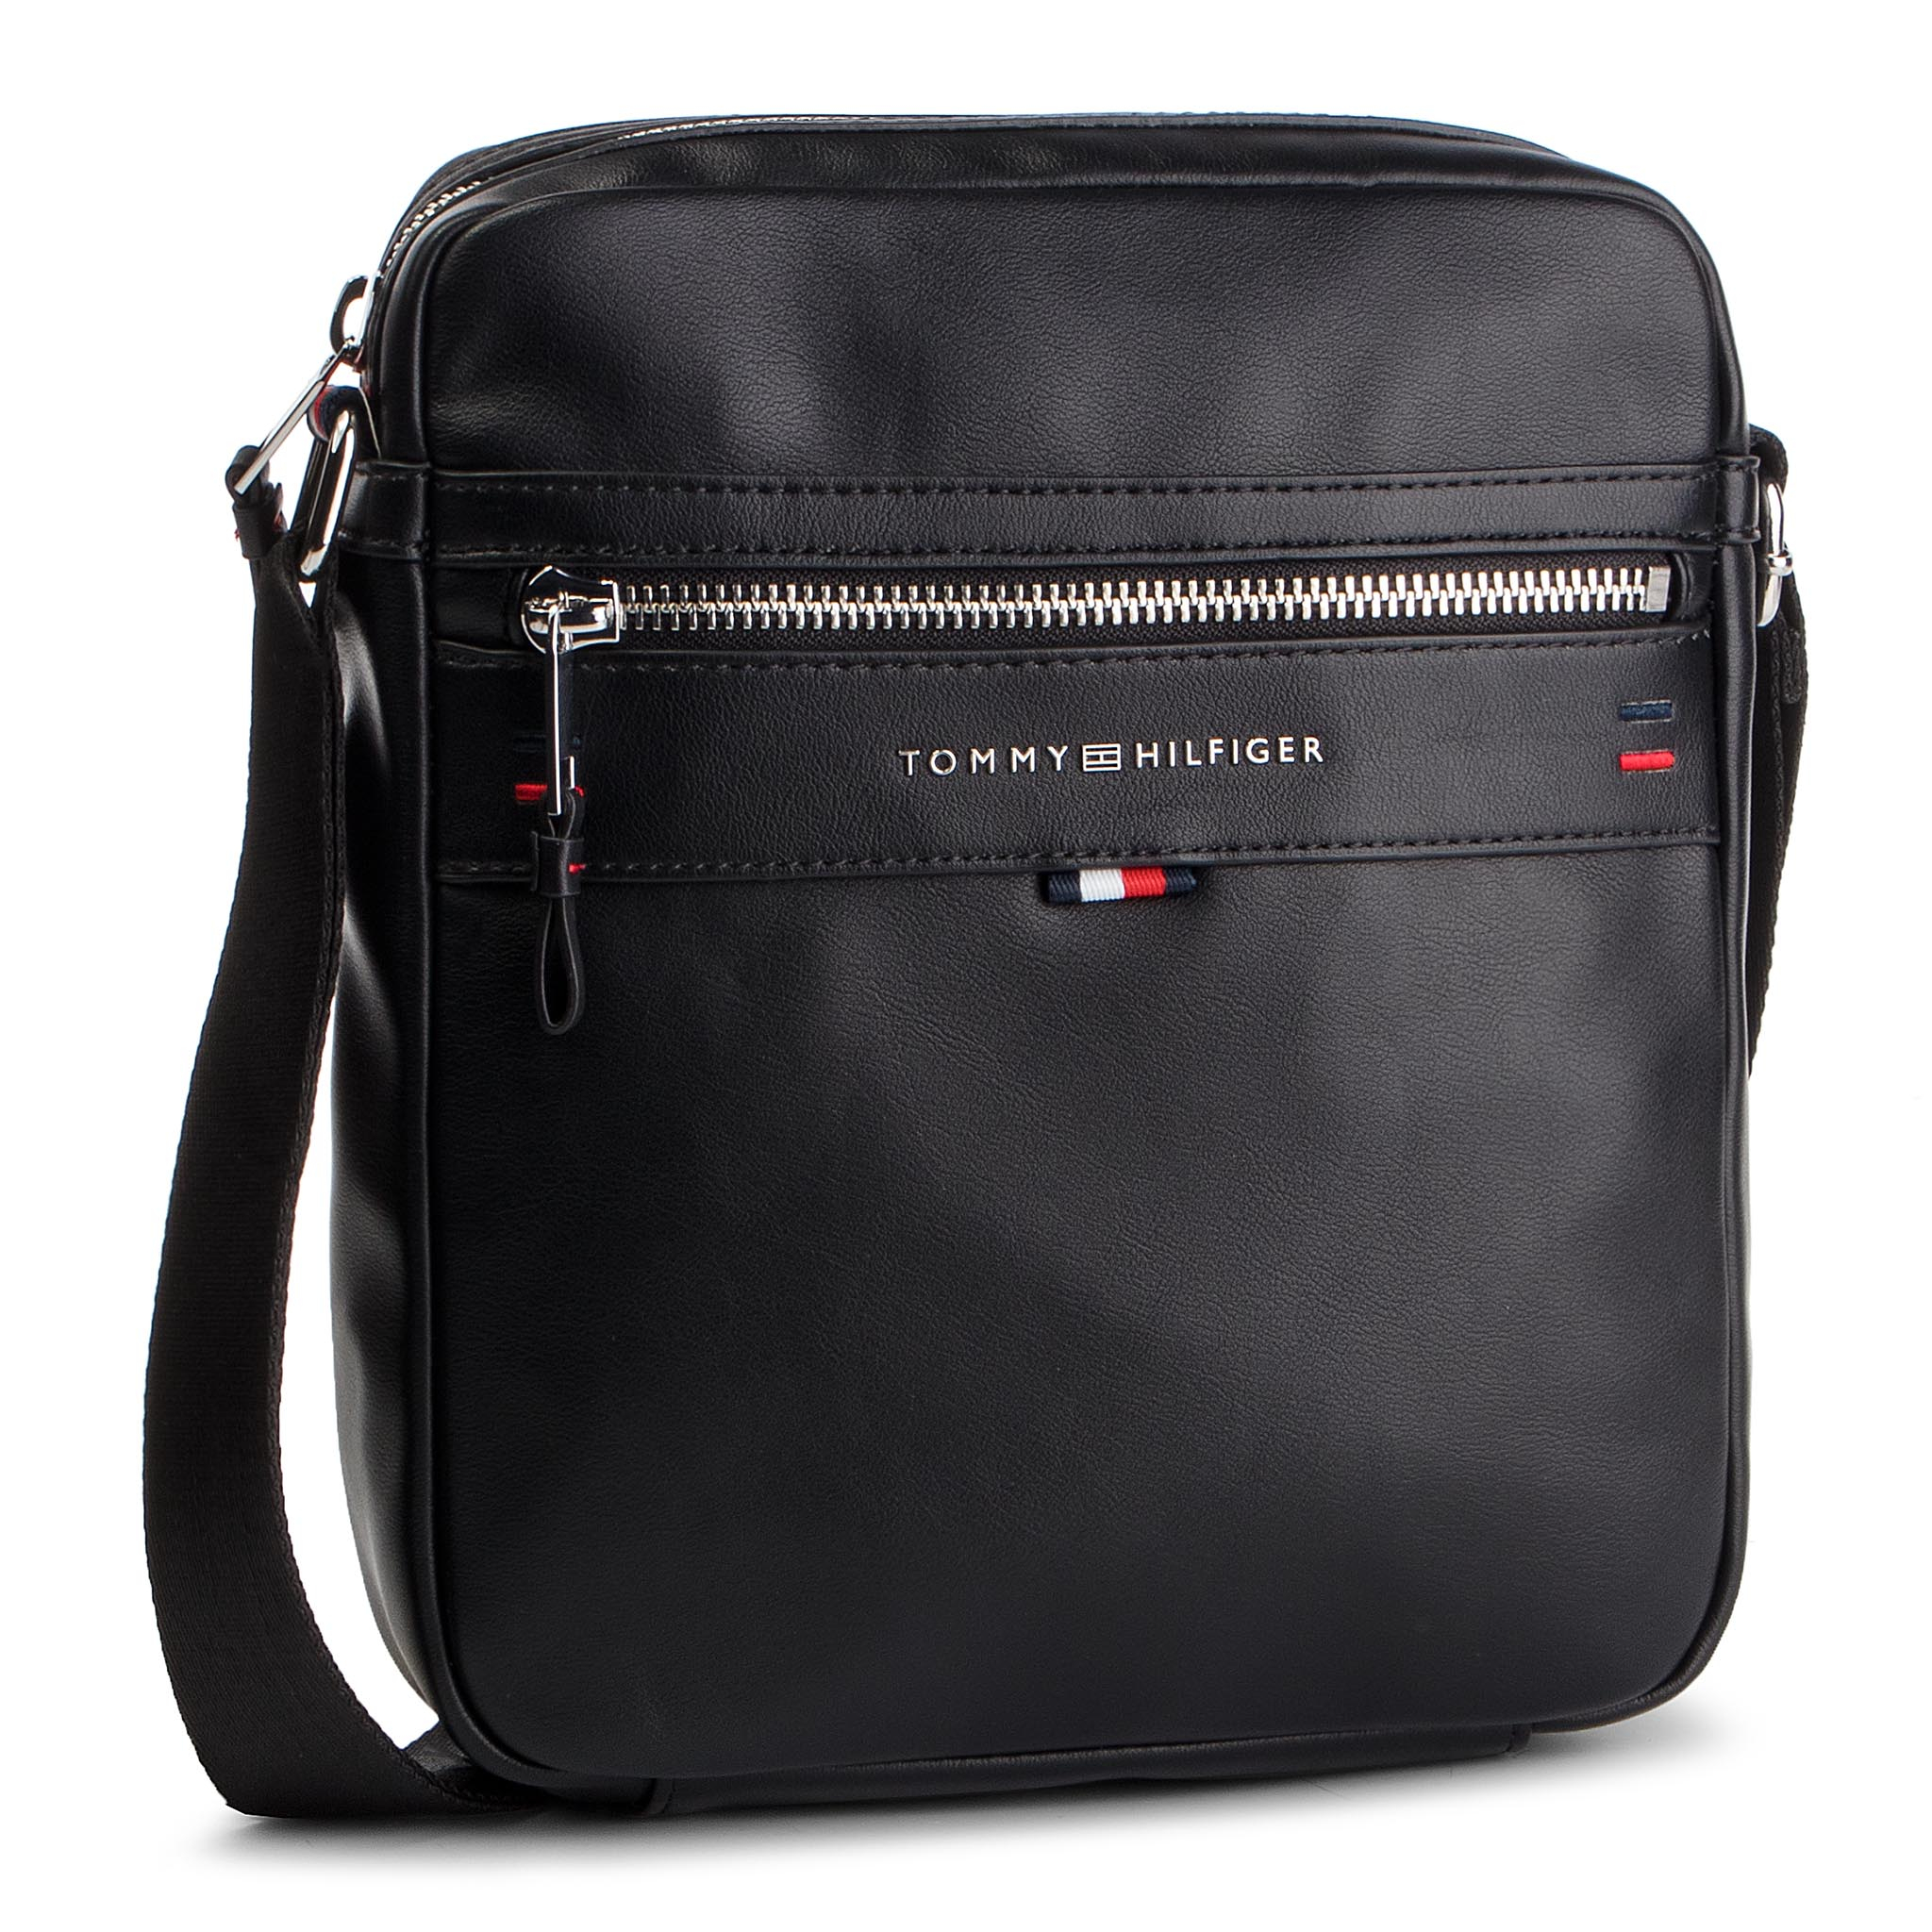 367c1d3d0 Messenger Bag TOMMY HILFIGER - Elevated Reporter Cc AM0AM03920 002 ...